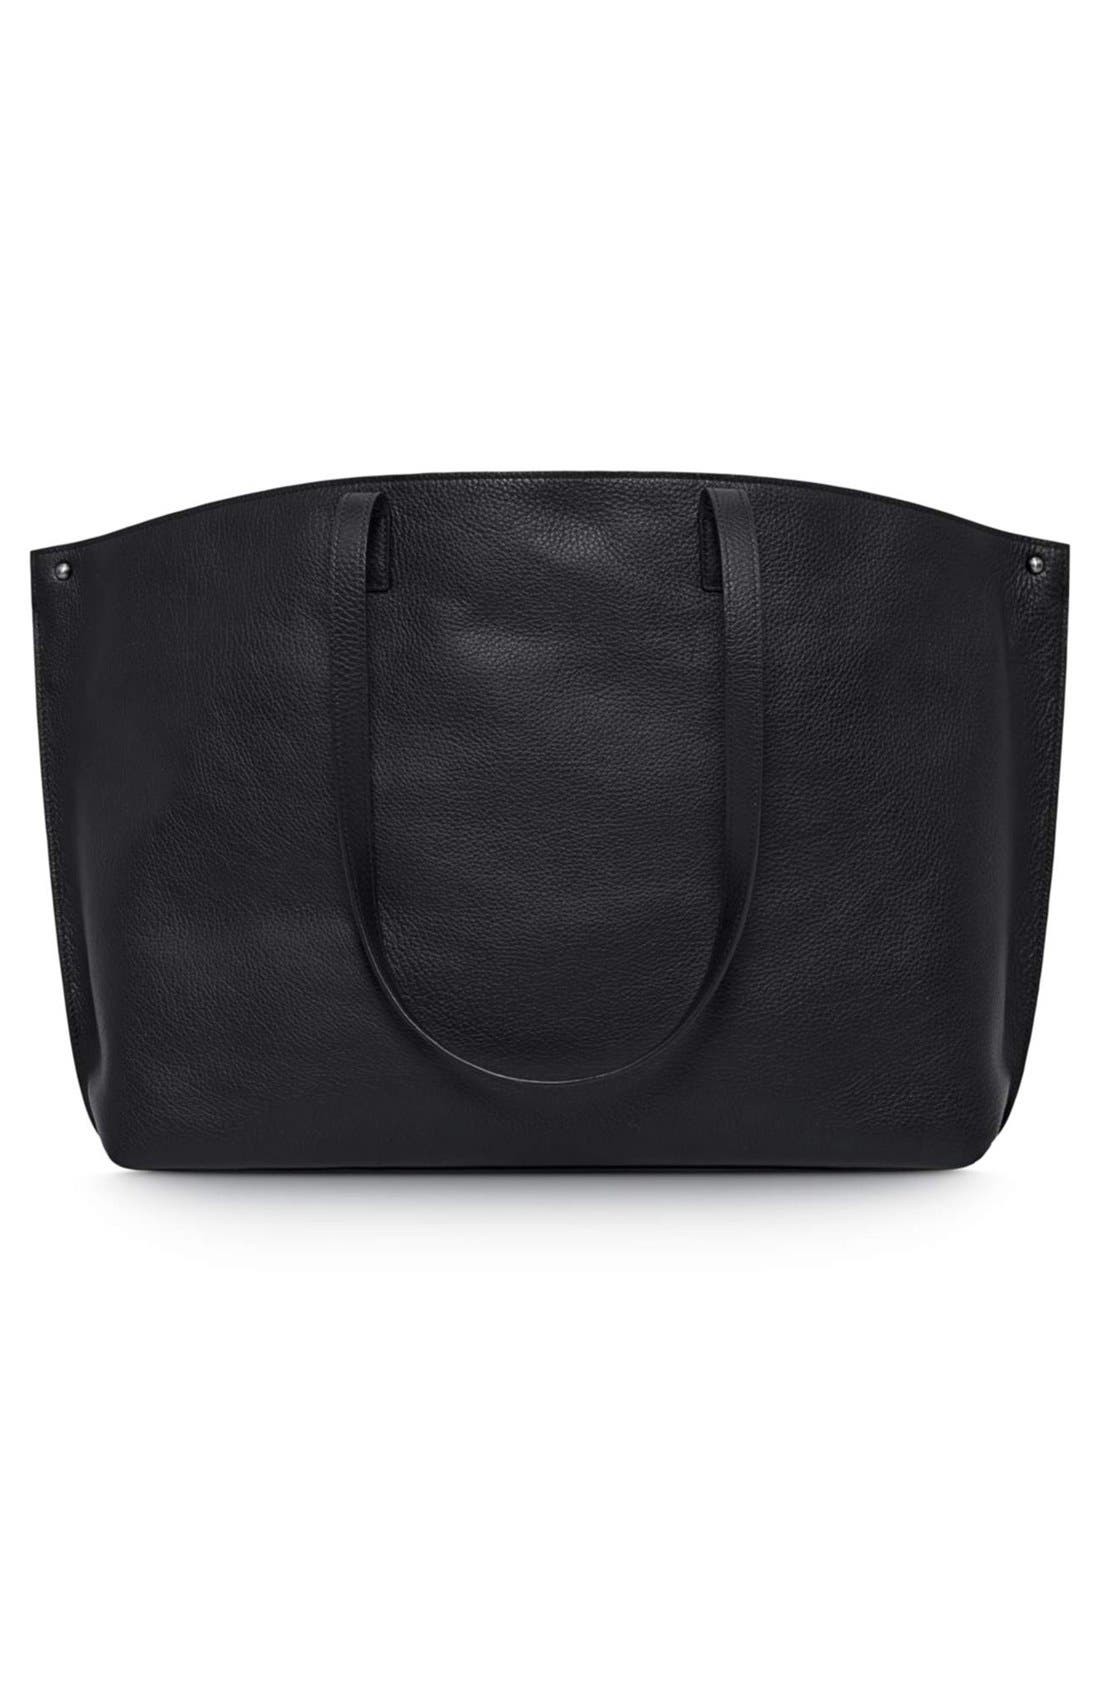 Alternate Image 3  - Akris 'Ai Medium Shoulder Tote' Leather Shoulder Tote